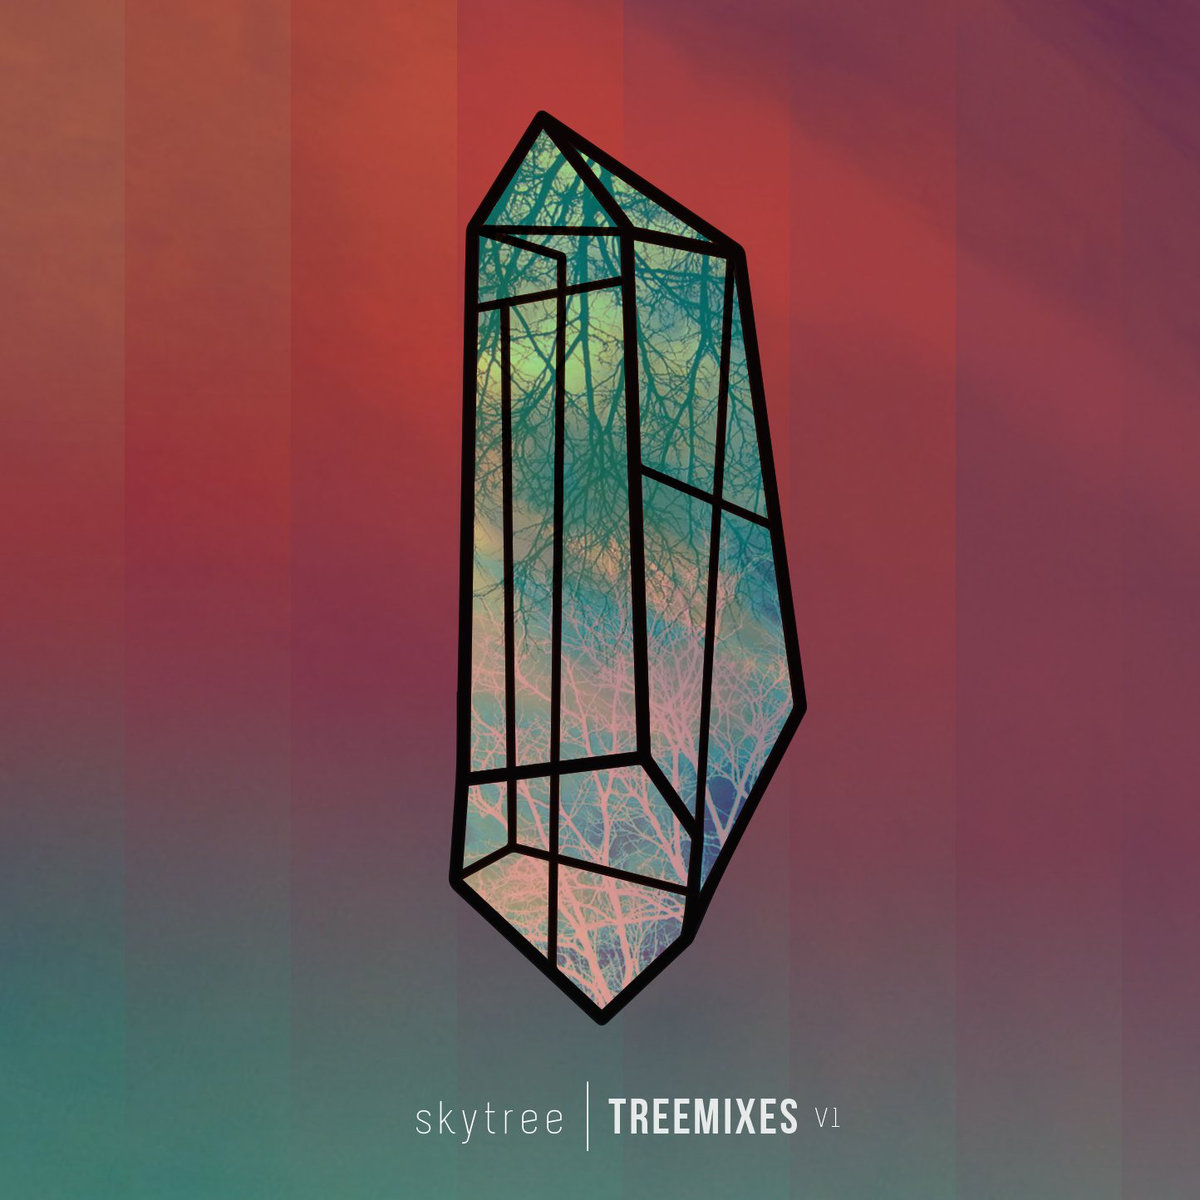 Skytree - Ten Thousand Oaks (Aligning Minds remix) @ 'Treemixes V1' album (Austin)